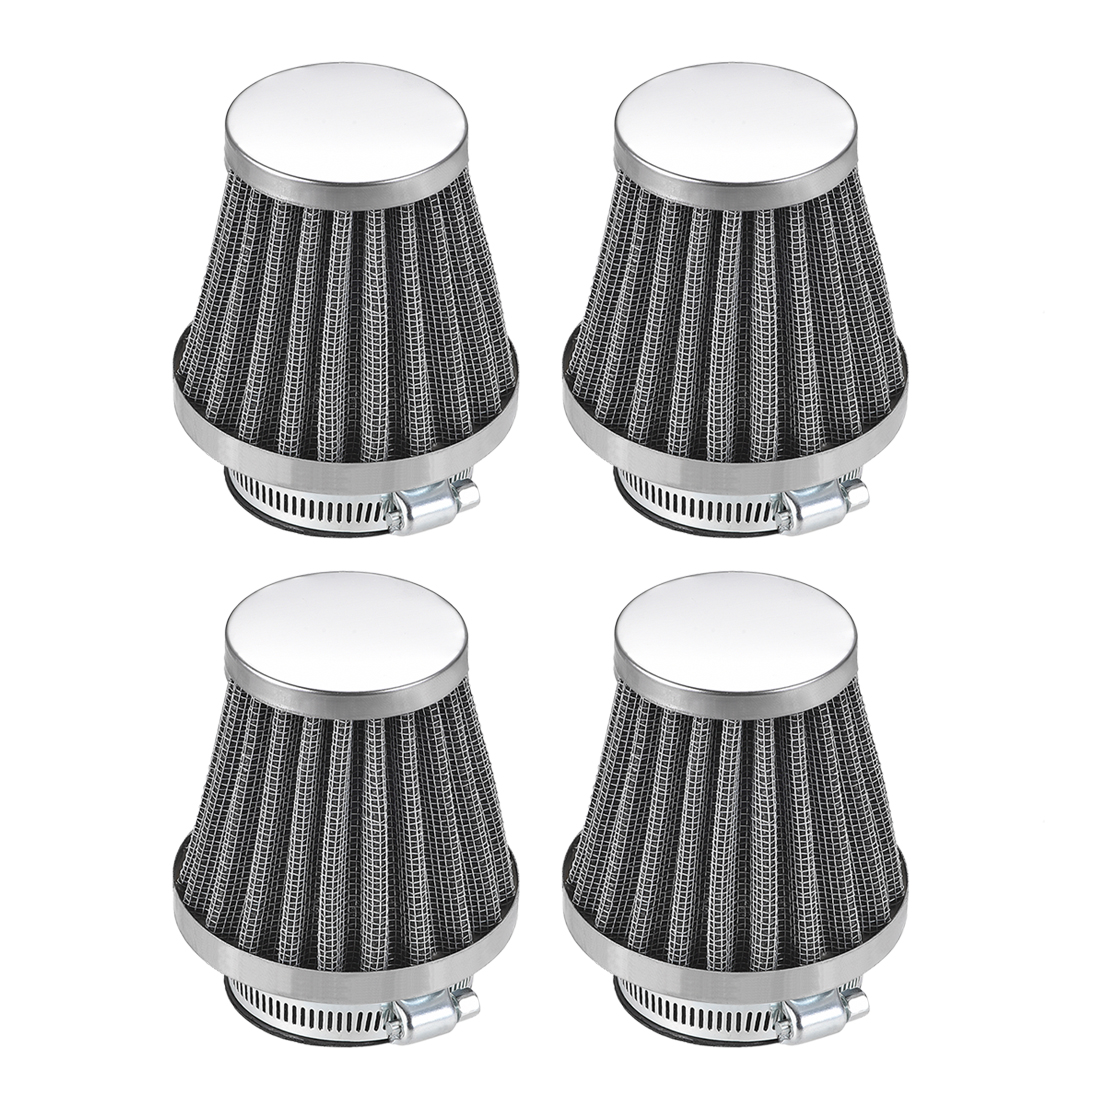 4 Pcs 39mm Air Filter for 50cc 110cc 150cc 200cc gy6 Moped Scooter Atv Dirt Bike